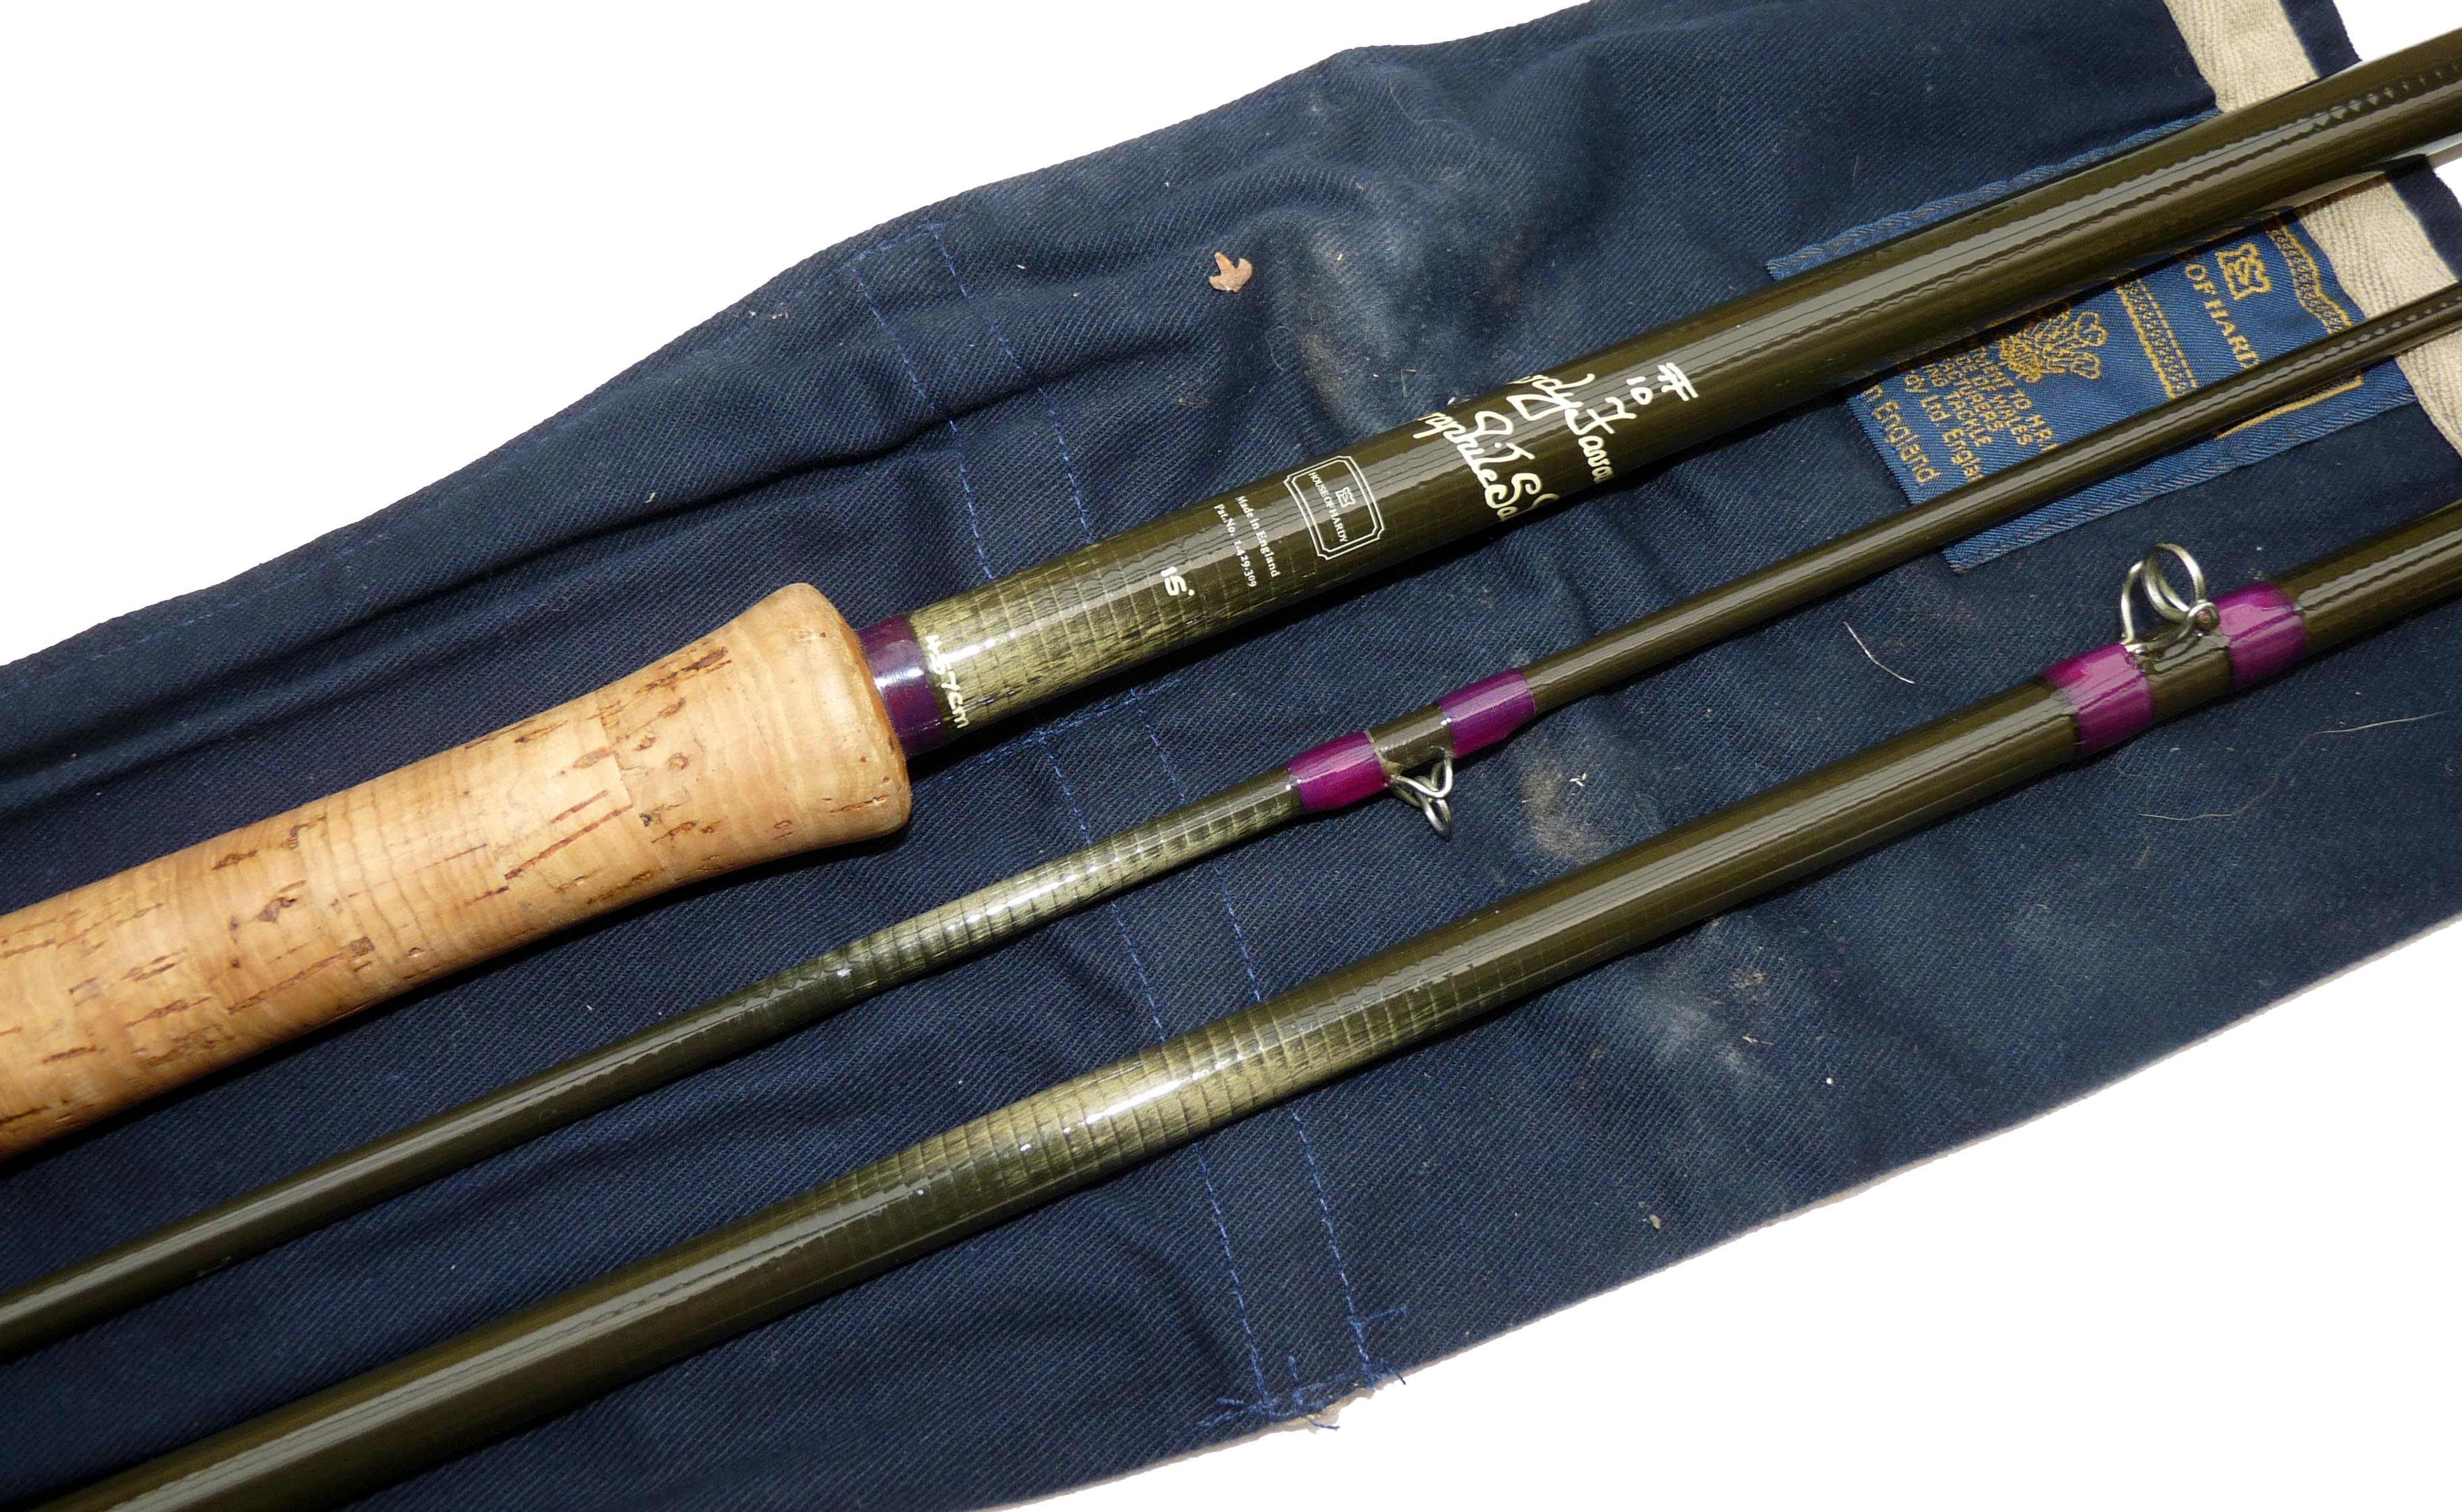 Rod hardy favourite graphite salmon fly rod 15 3 piece for Purple fishing rod